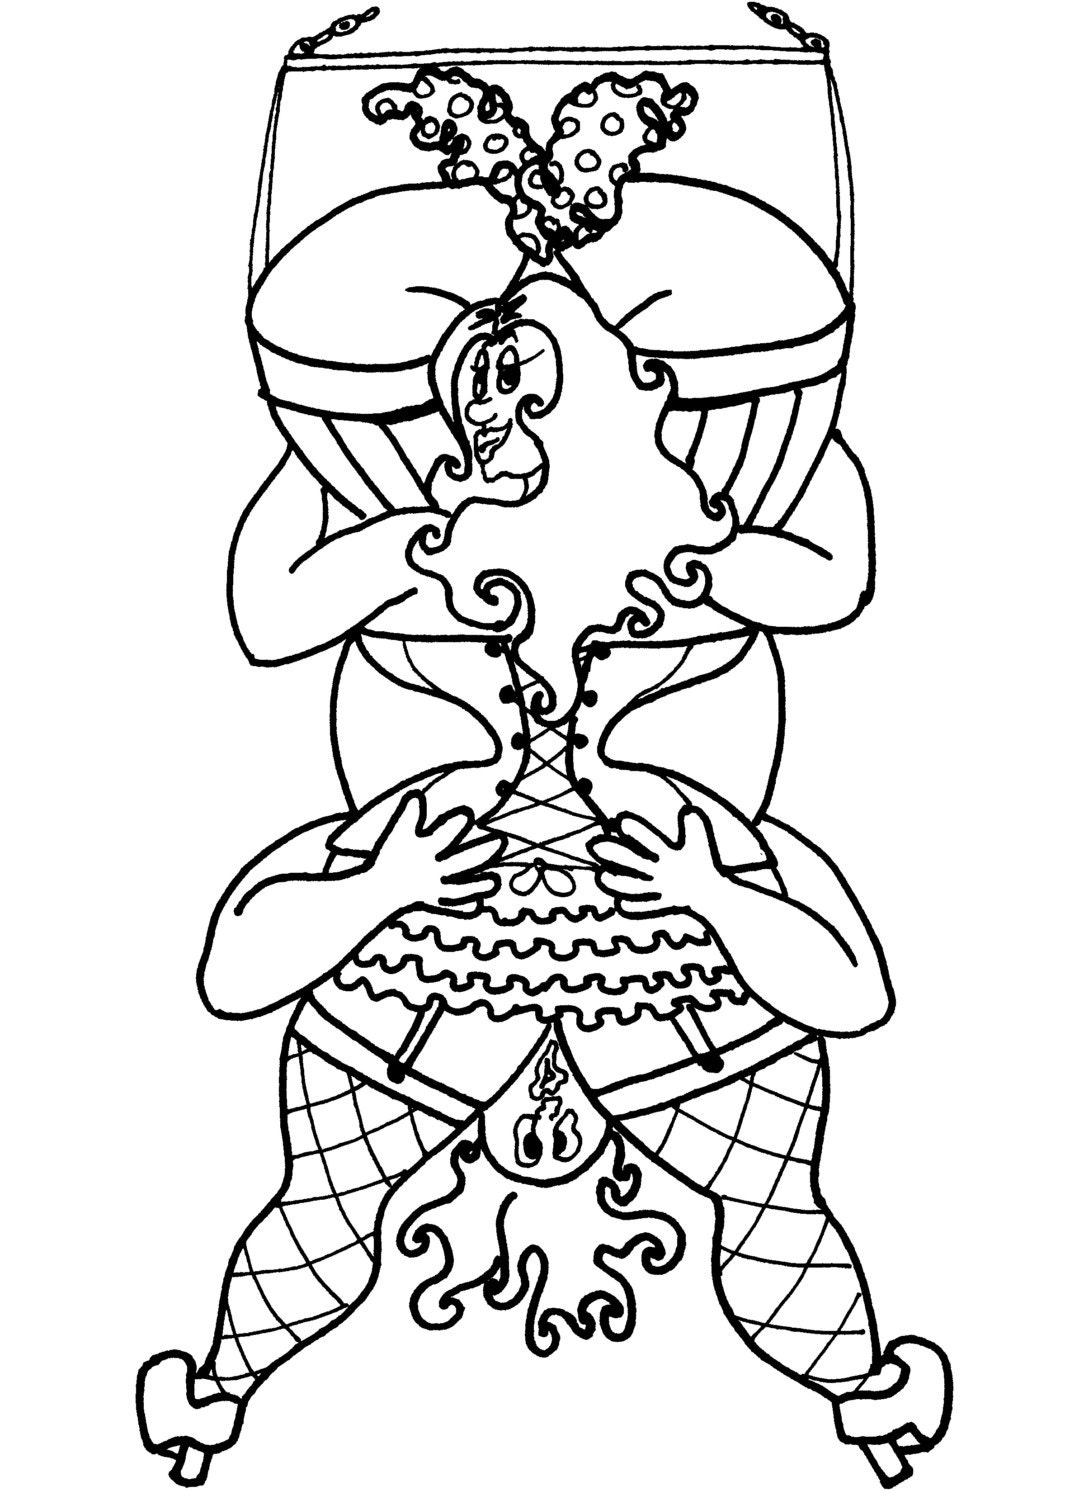 Coloring pages for bedroom -  Zoom